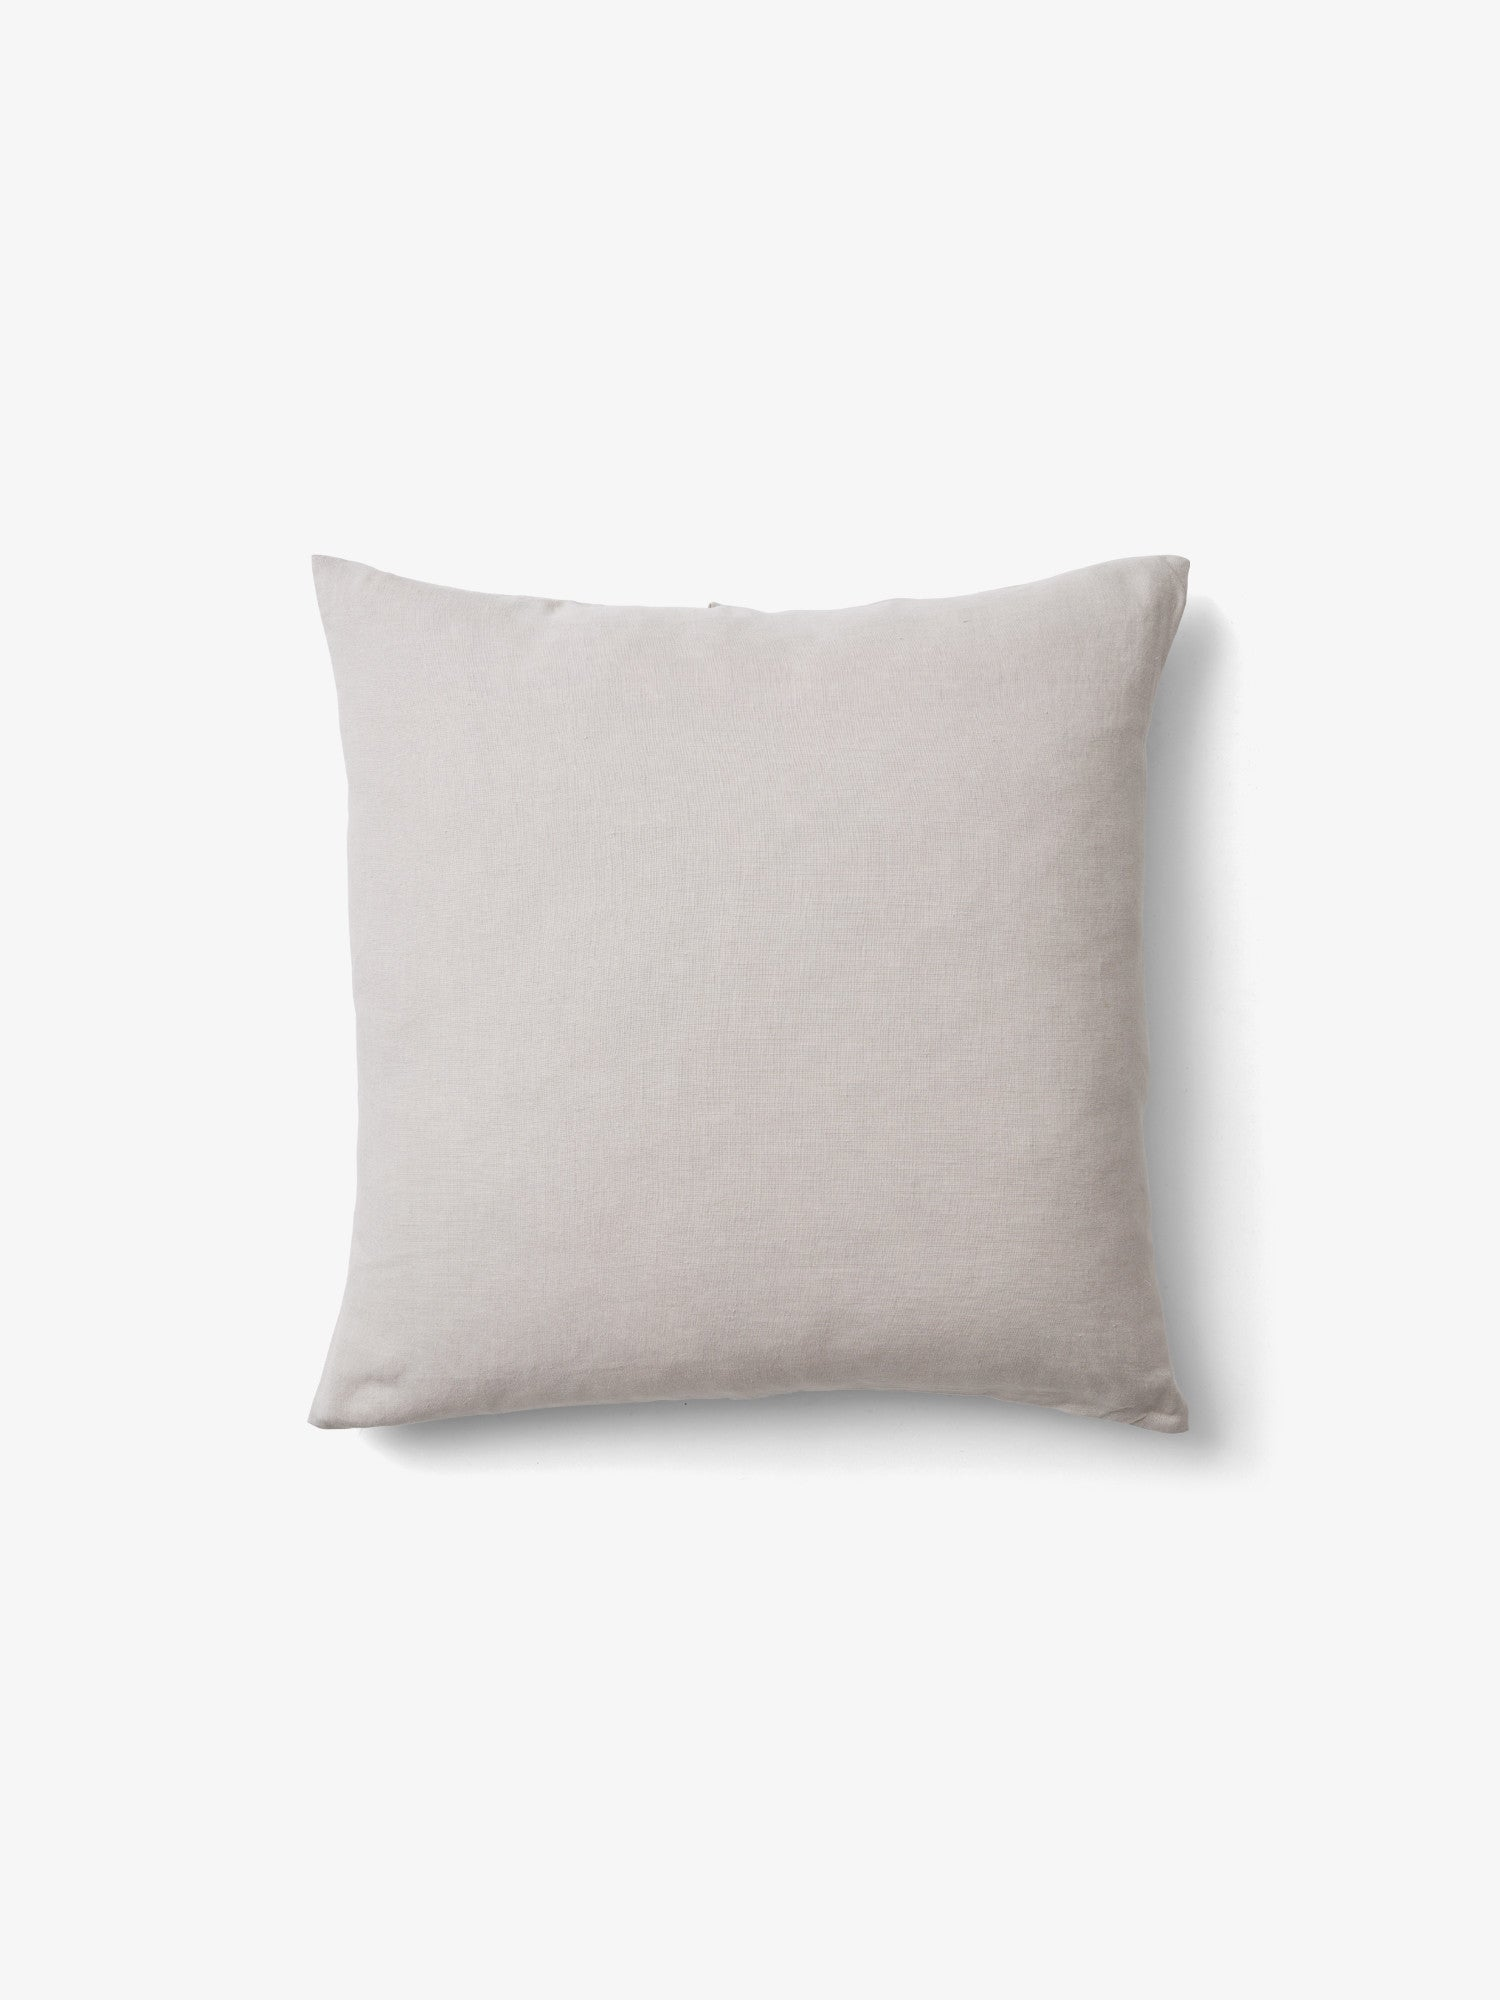 Collect Pillow 65x65cm - Linen